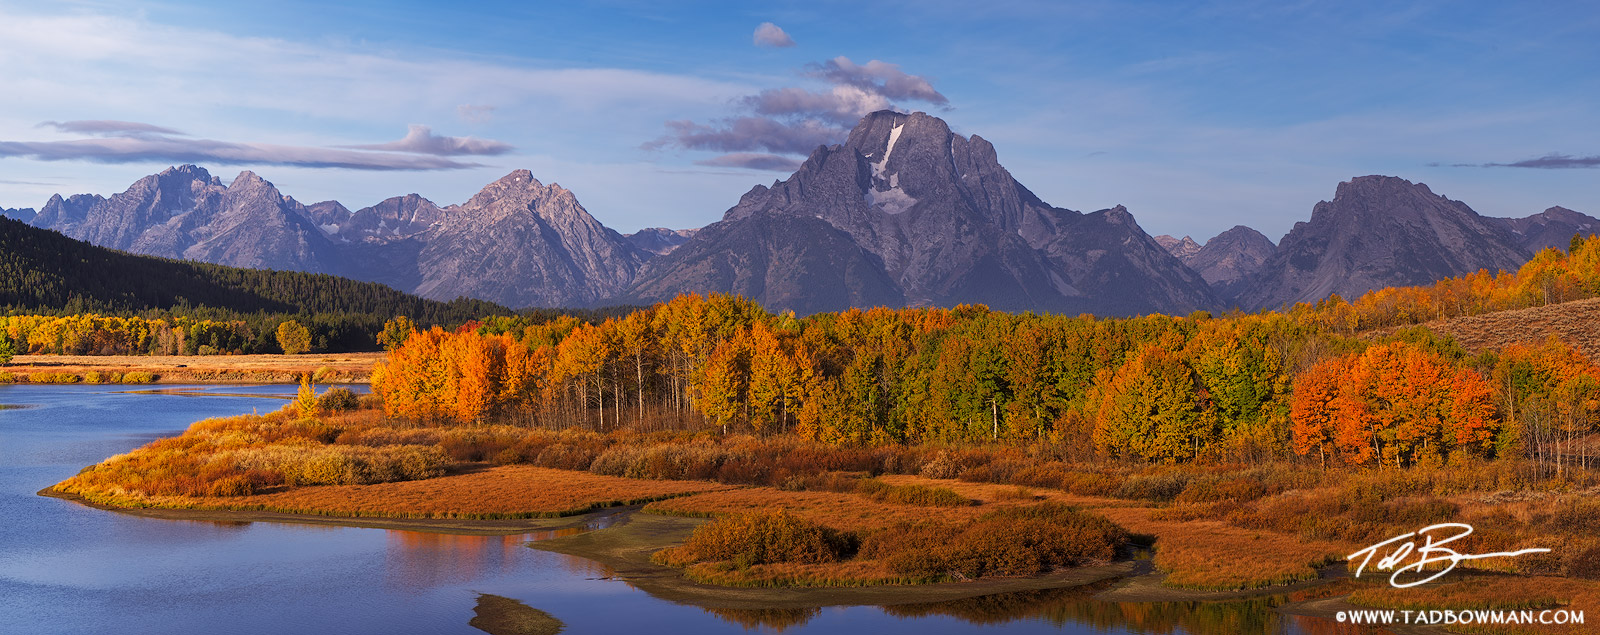 Wyoming, Oxbow Bend photos,mountain images,Fall colors,grand teton photos,Autum picture,Gold Aspen tree,Grand Tetons Photos,Grand Teton National Park photographs,fall photos,reflection,reflections, photo